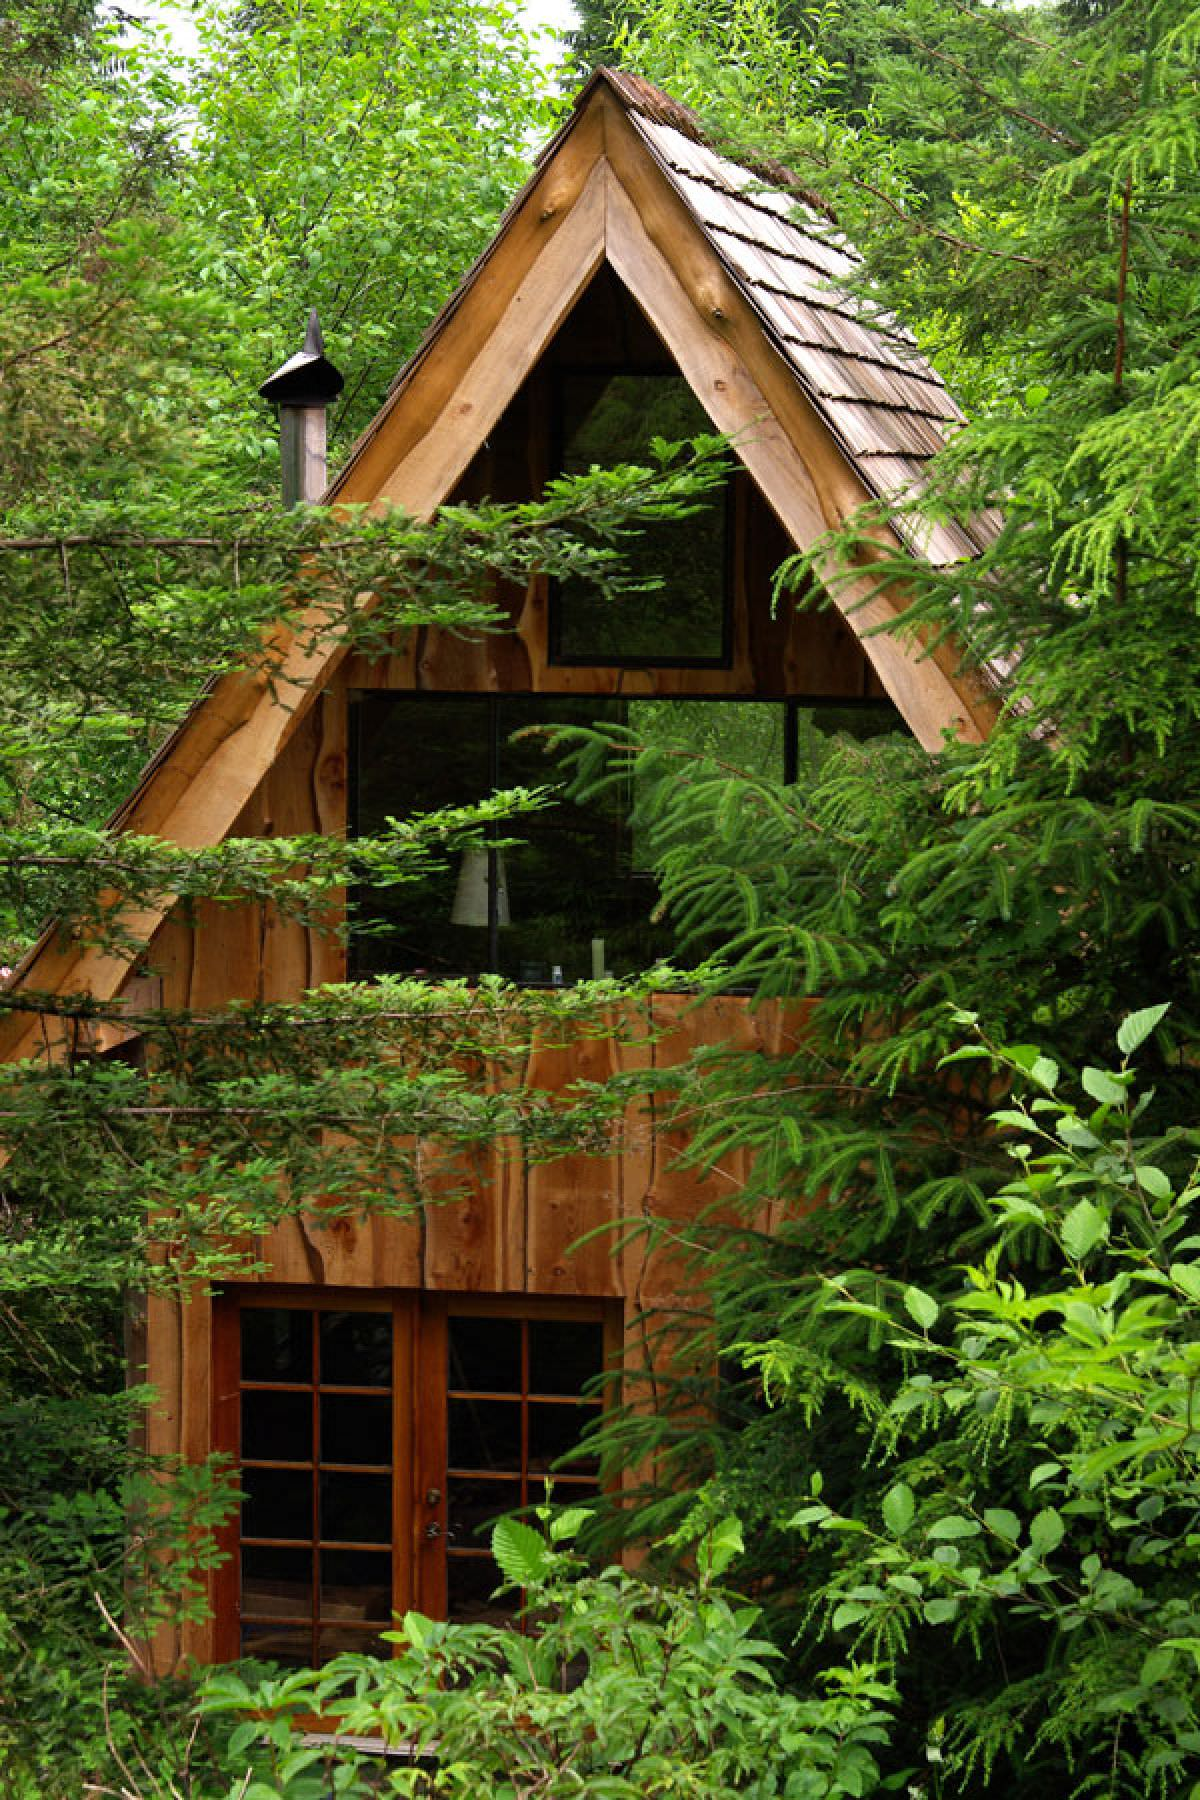 51_A-Lovely-Forest-Home-Built-With-A-11000-Budget_0-f_mini